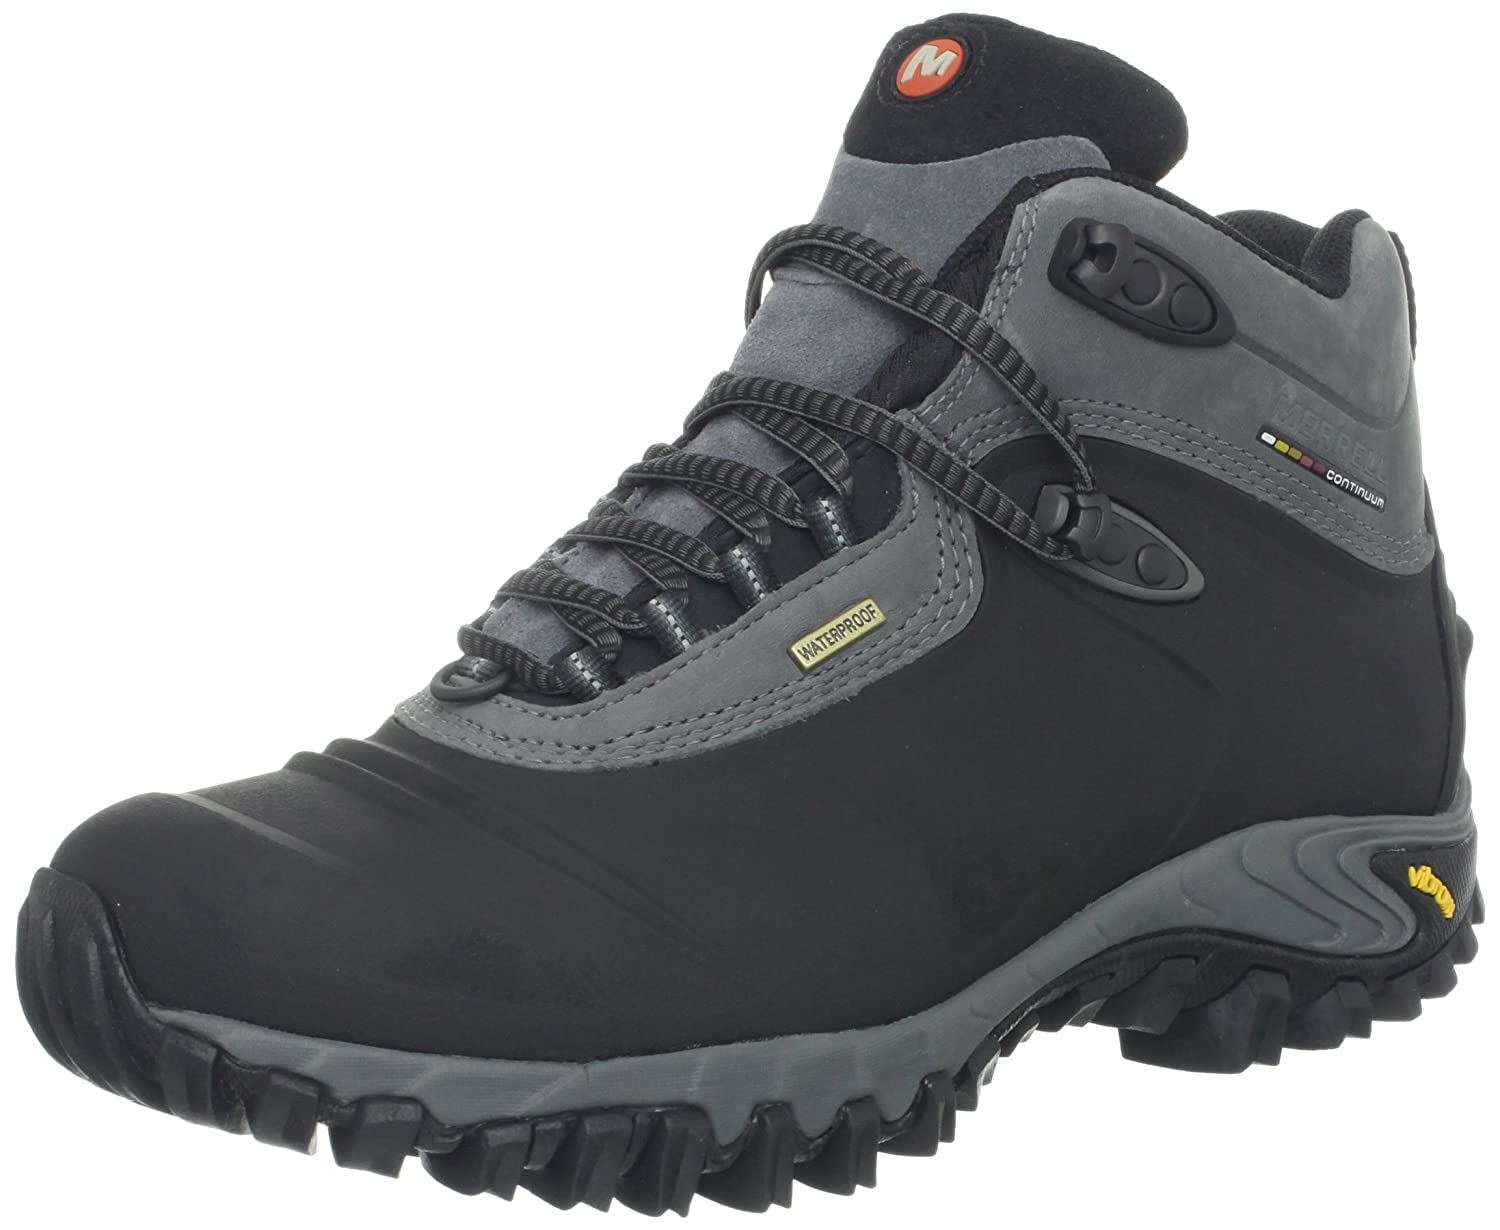 a2a930b7 Merrell Men's Thermo 6 Waterproof Winter Boot